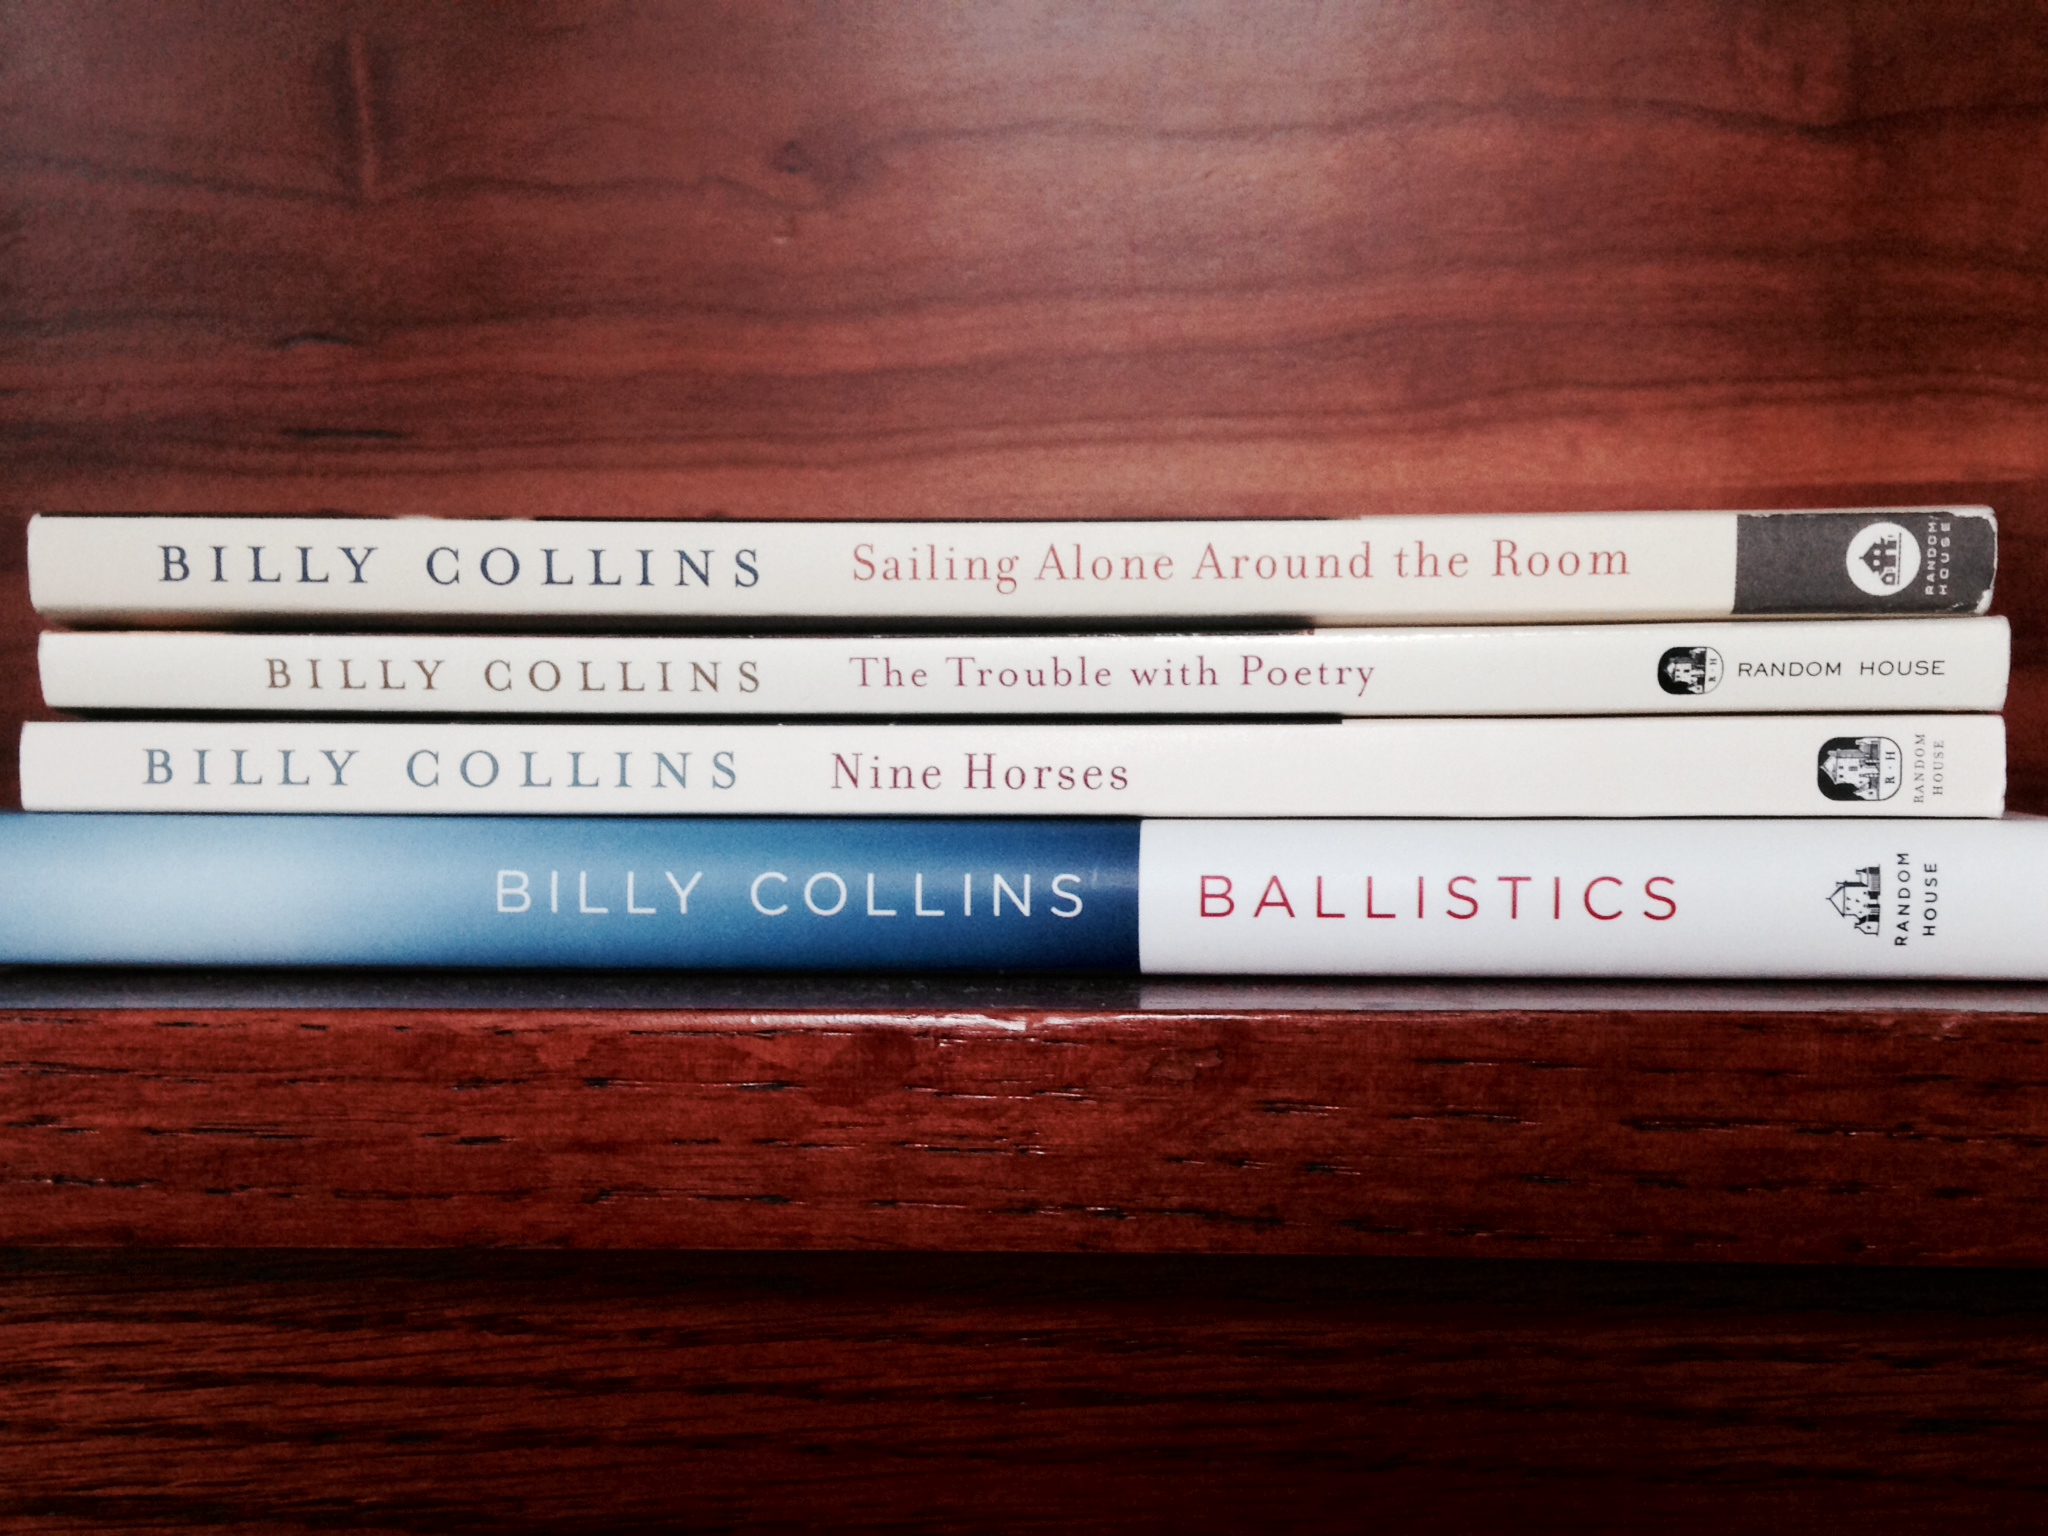 Do yourself a HUGE favor and curl up with a copy of Billy Collins' poems. You won't be sorry. | lucyflint.com